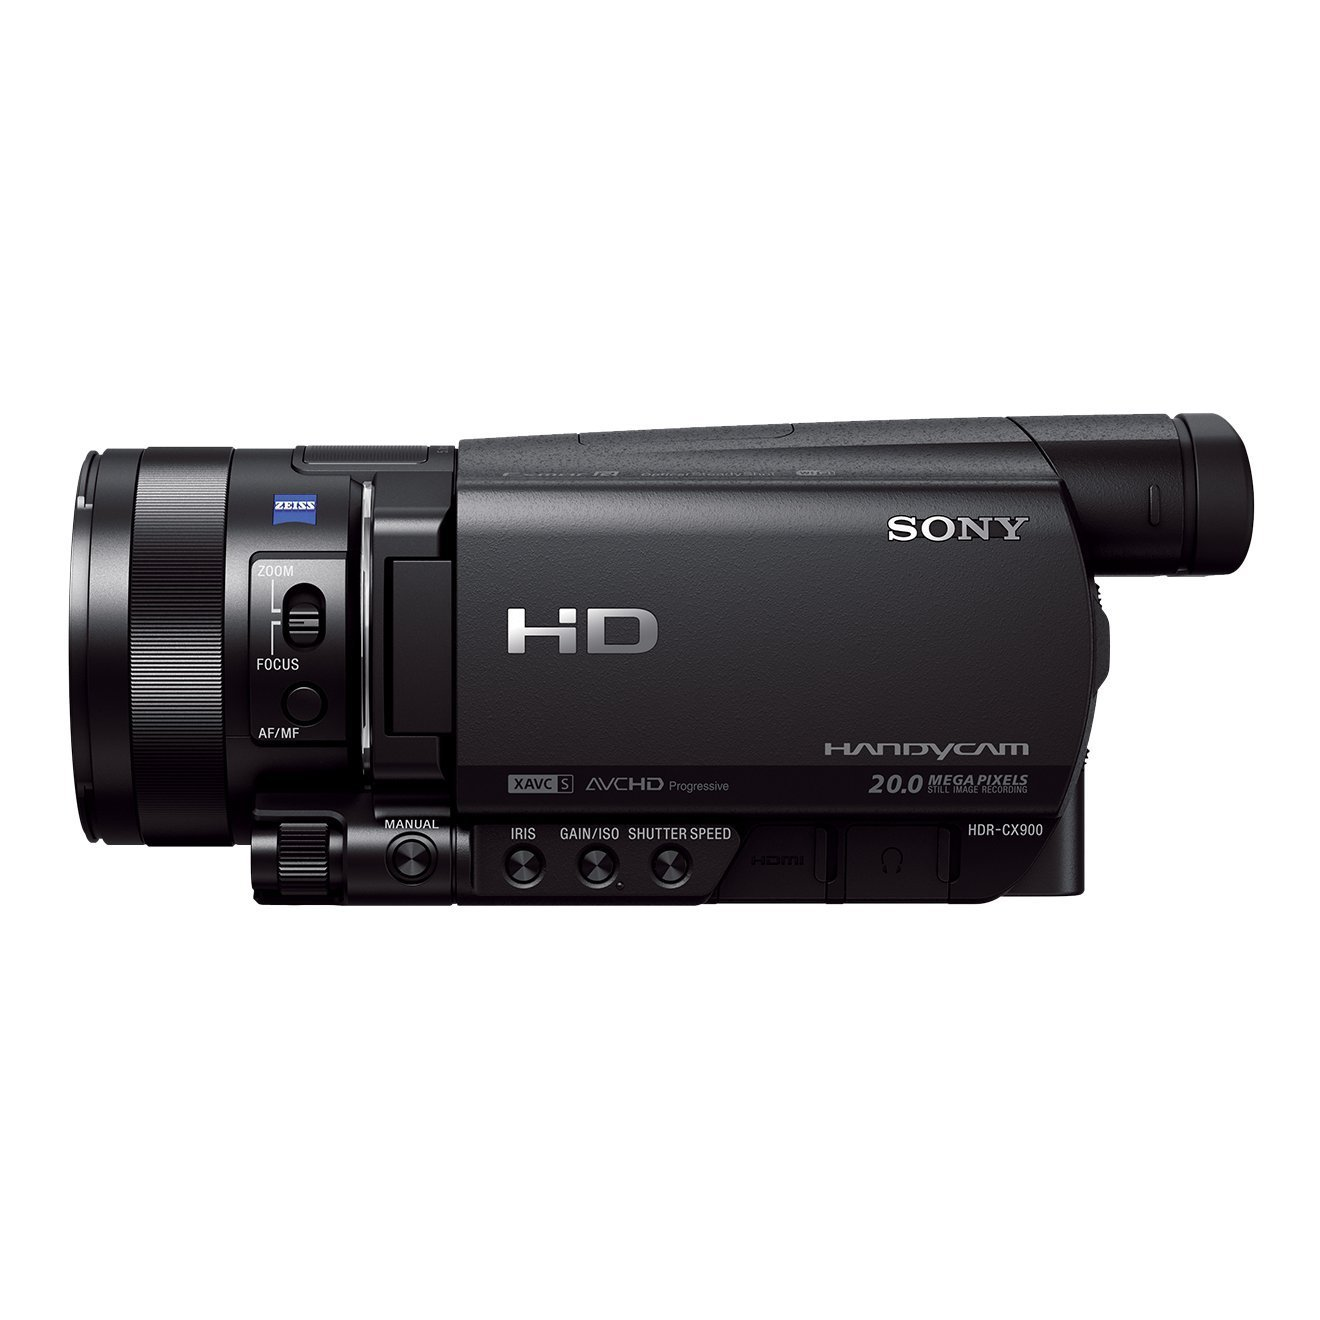 "Sony Handycam HDR-CX900E - Videocámara de 14.2 Mp (pantalla de 3.5"", zoom óptico 12x, estabilizador óptico, vídeo Full HD, WiFi y NFC), Negro"